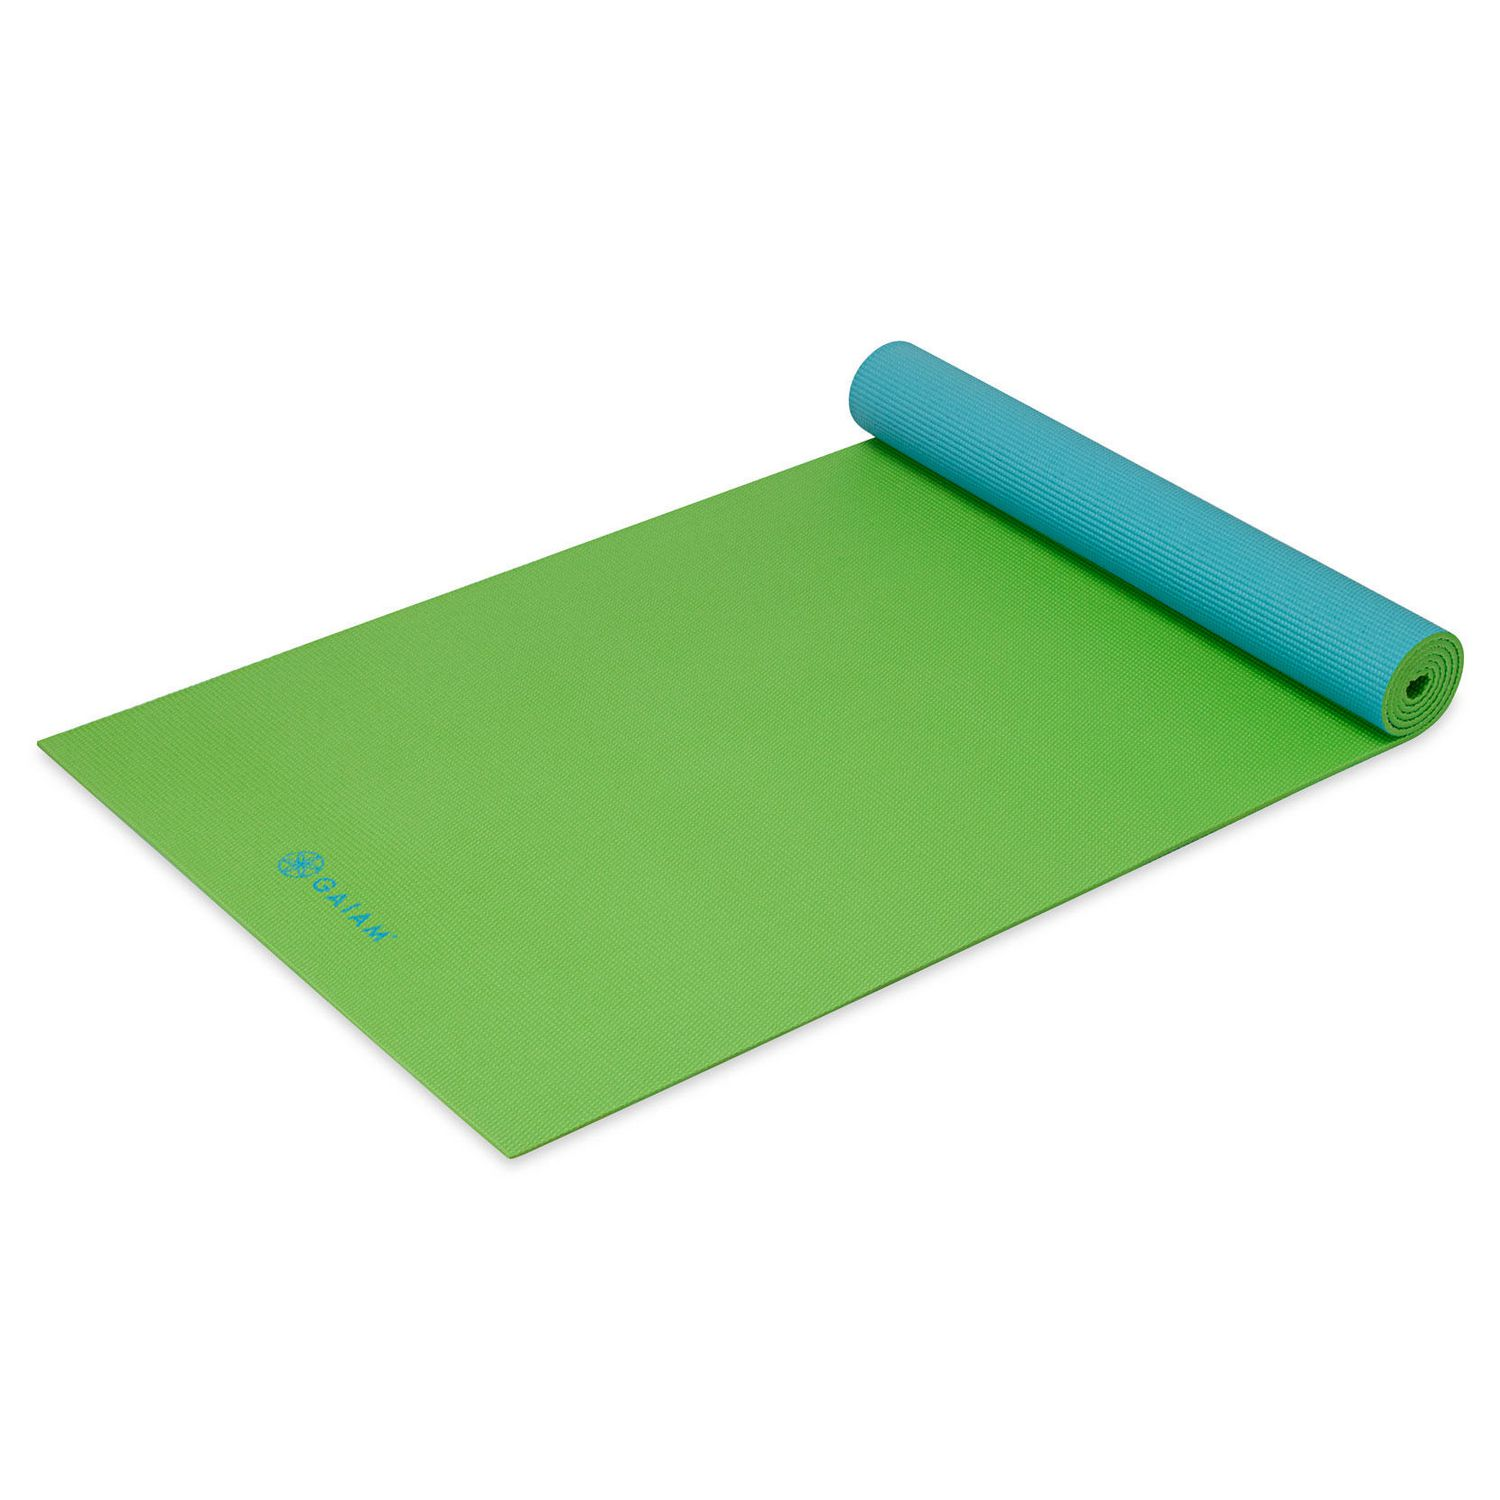 5MM REVERSIBLE 2 COLOR YOGA MAT SEA TURTLE BLUE GREEN